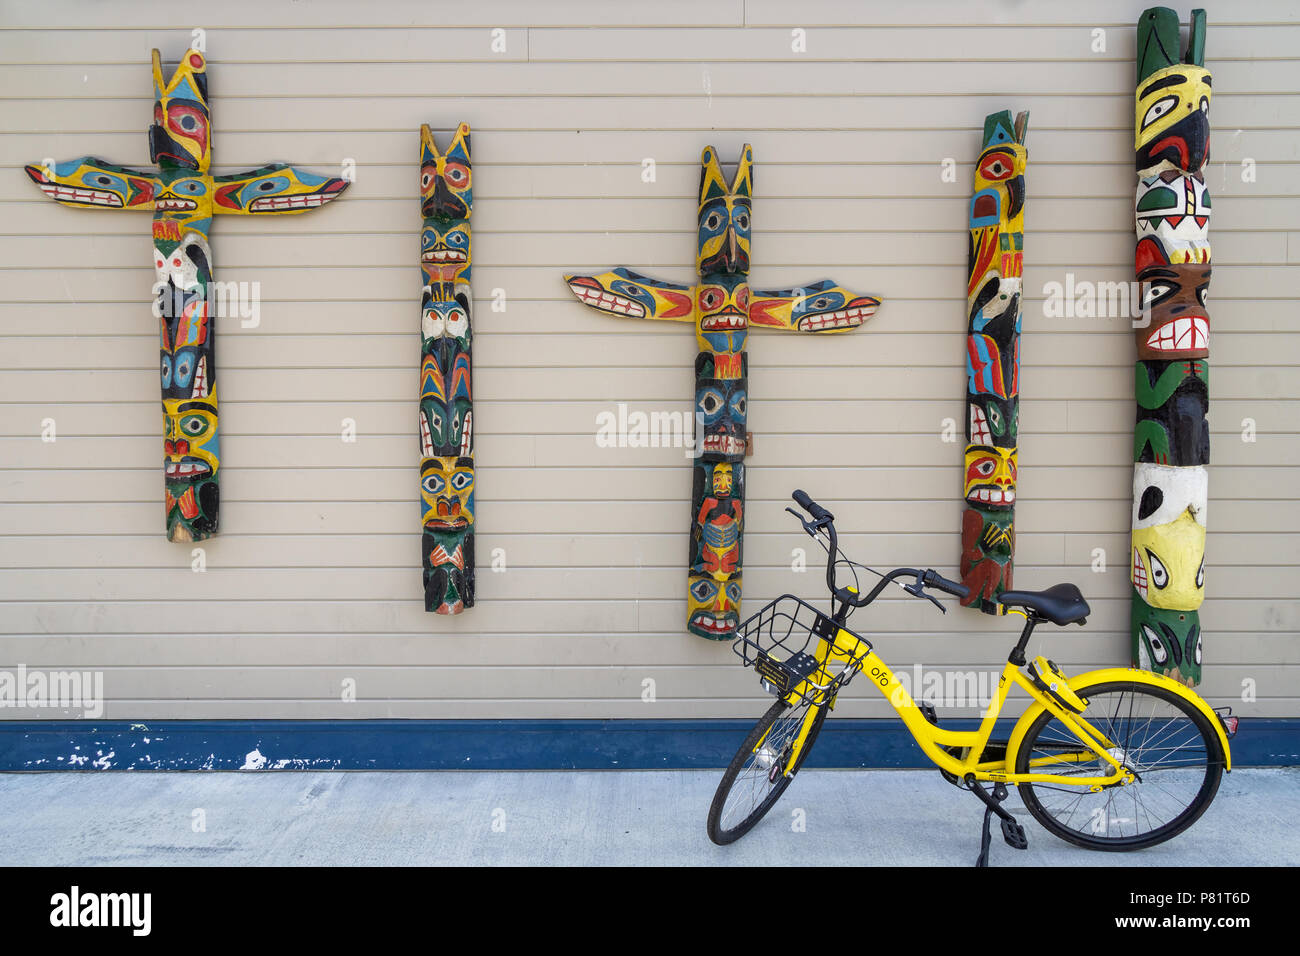 Native wooden painted totems hanging on a wall of the Pier 54 with a yellow bike for rent parked on the sidewalk, Seattle waterfront, WA, USA. - Stock Image